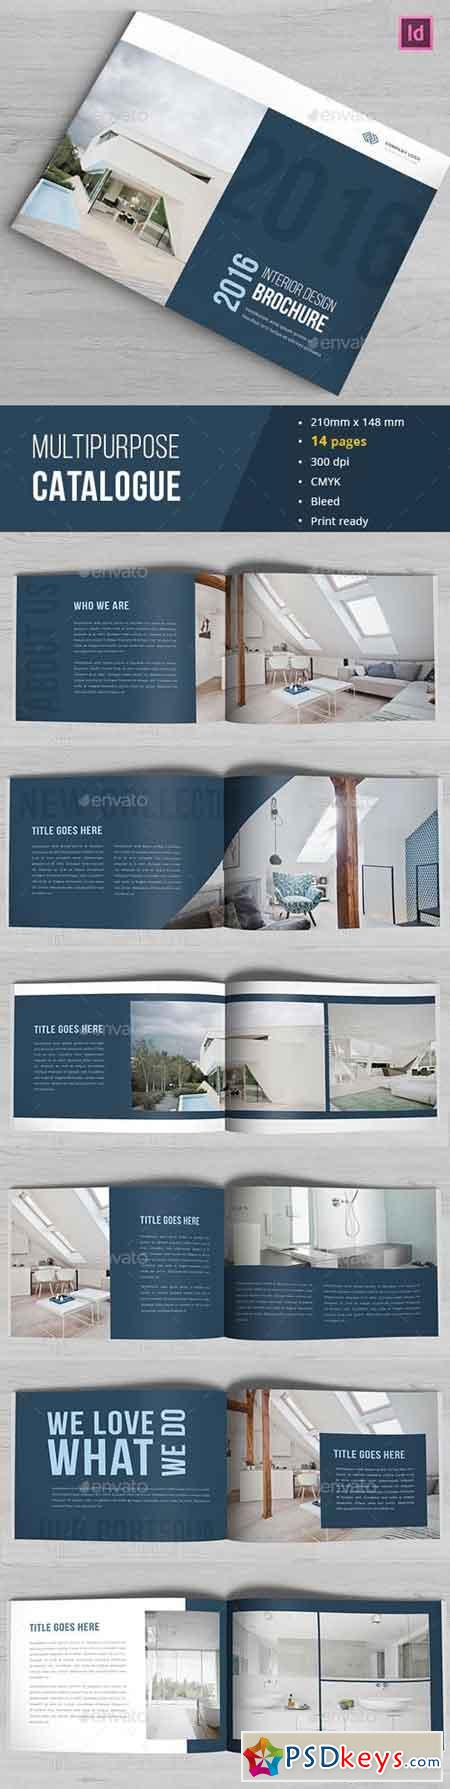 Indesign portfolio catalogue 17033561 free download for Free indesign portfolio templates